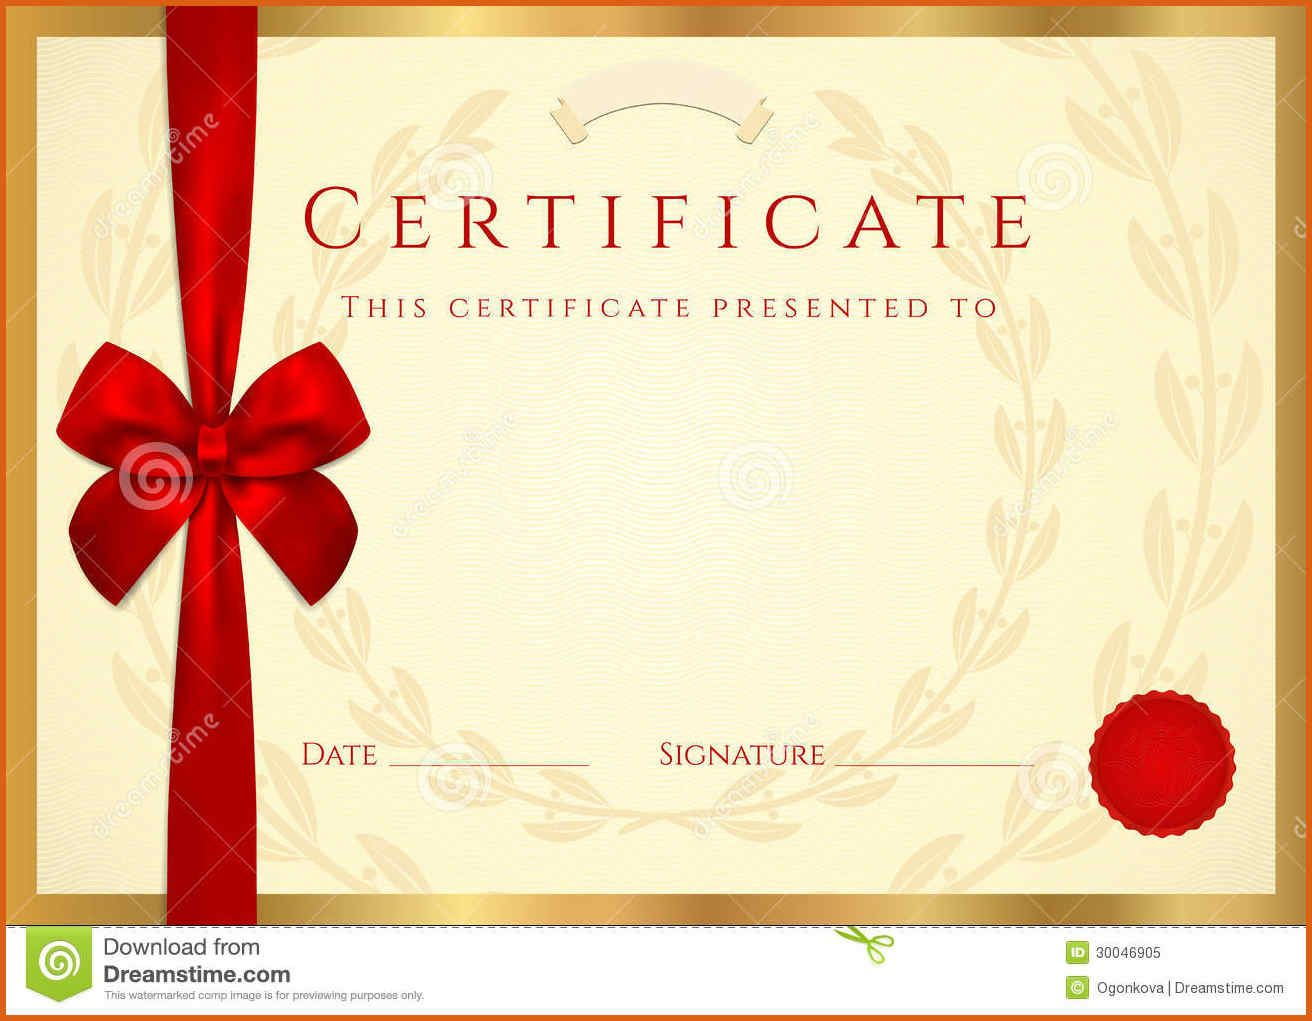 certificate-template-free-certificate-completion-template-wax-seal ...